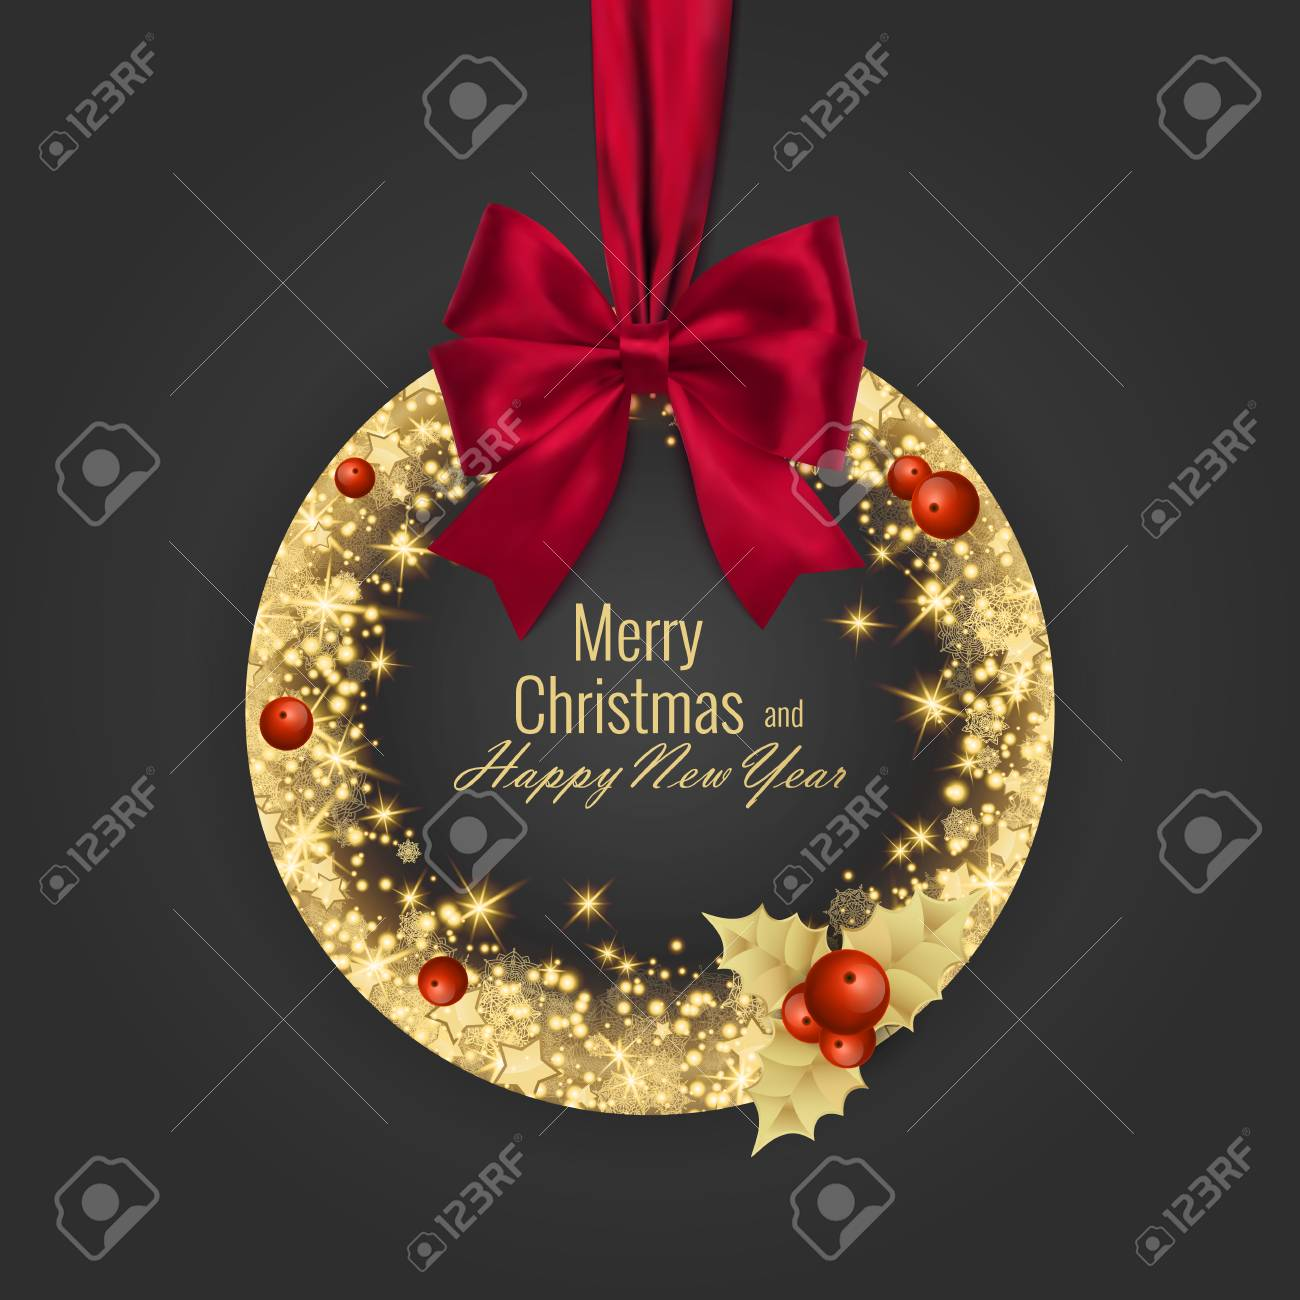 Merry Christmas and Happy New Year 2018 greeting card, vector illustration - 88261186